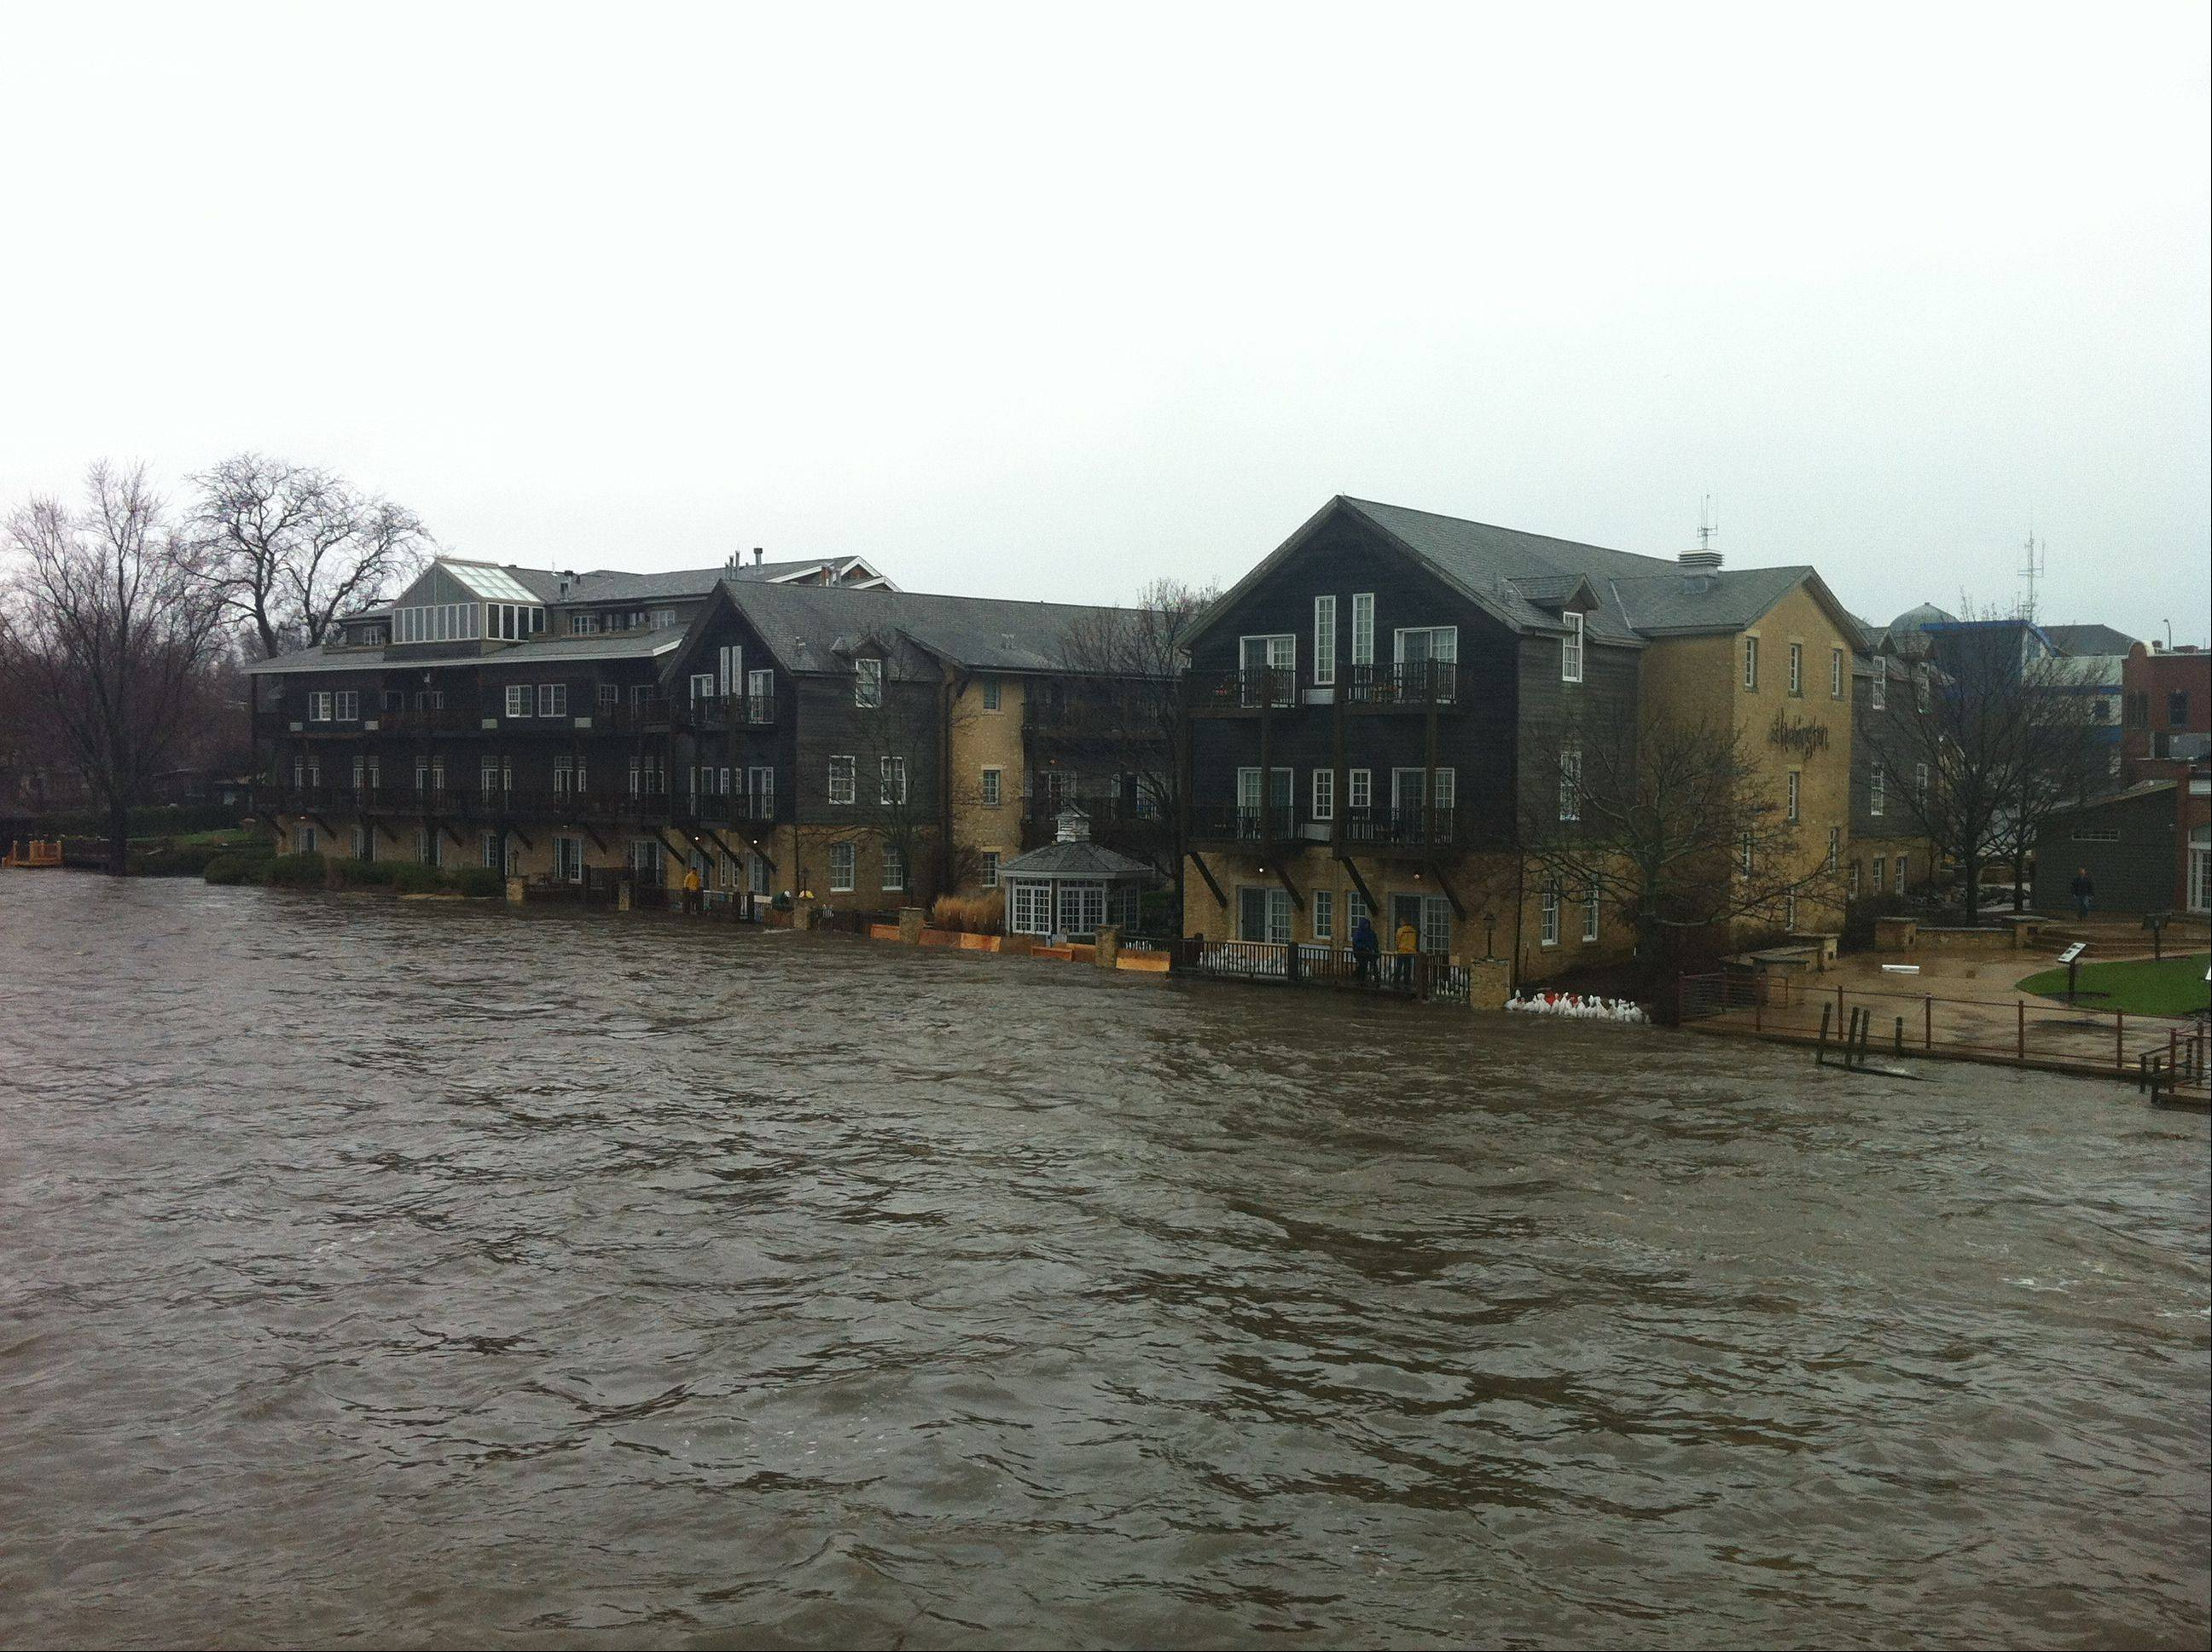 Photo courtesy of Mike NiemelaSand bags holding back the rising Fox River at the Harrington Inn in Geneva.